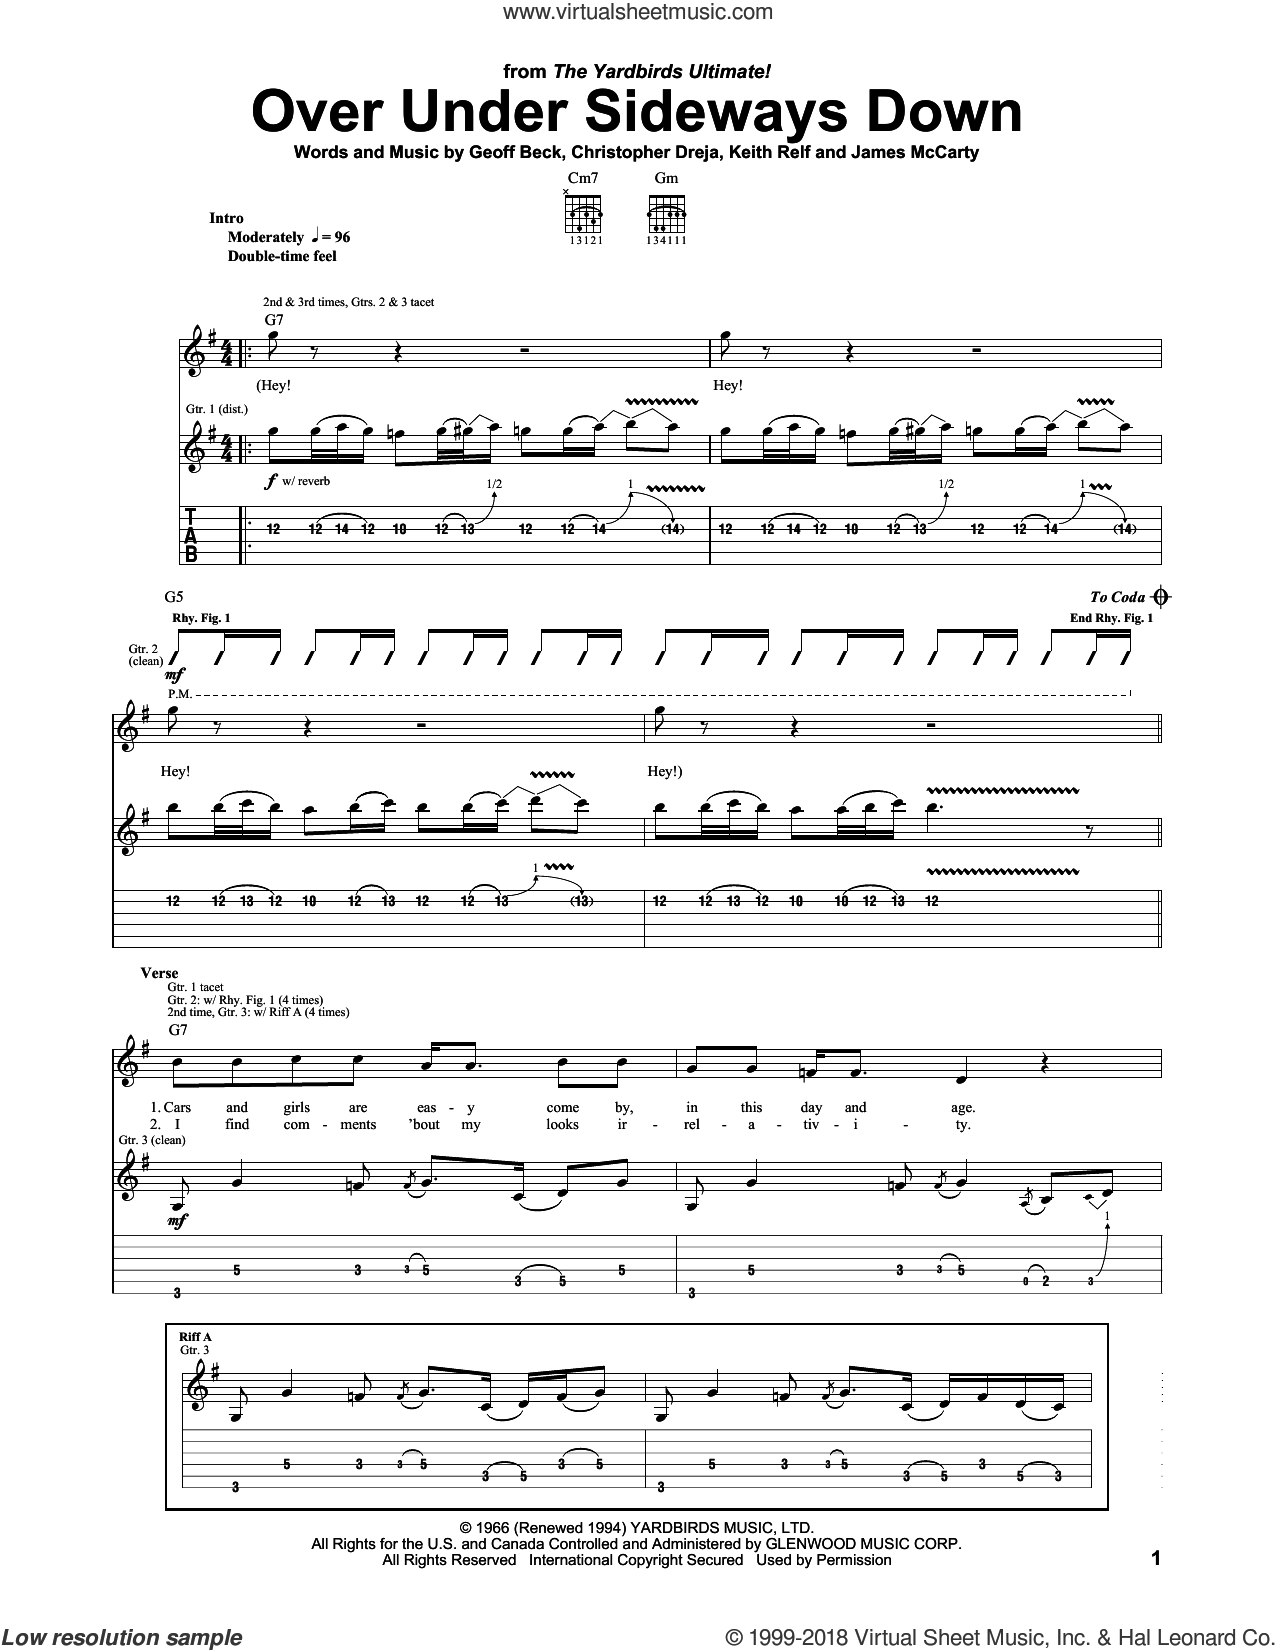 Over Under Sideways Down sheet music for guitar (tablature) by The Yardbirds and James McCarty